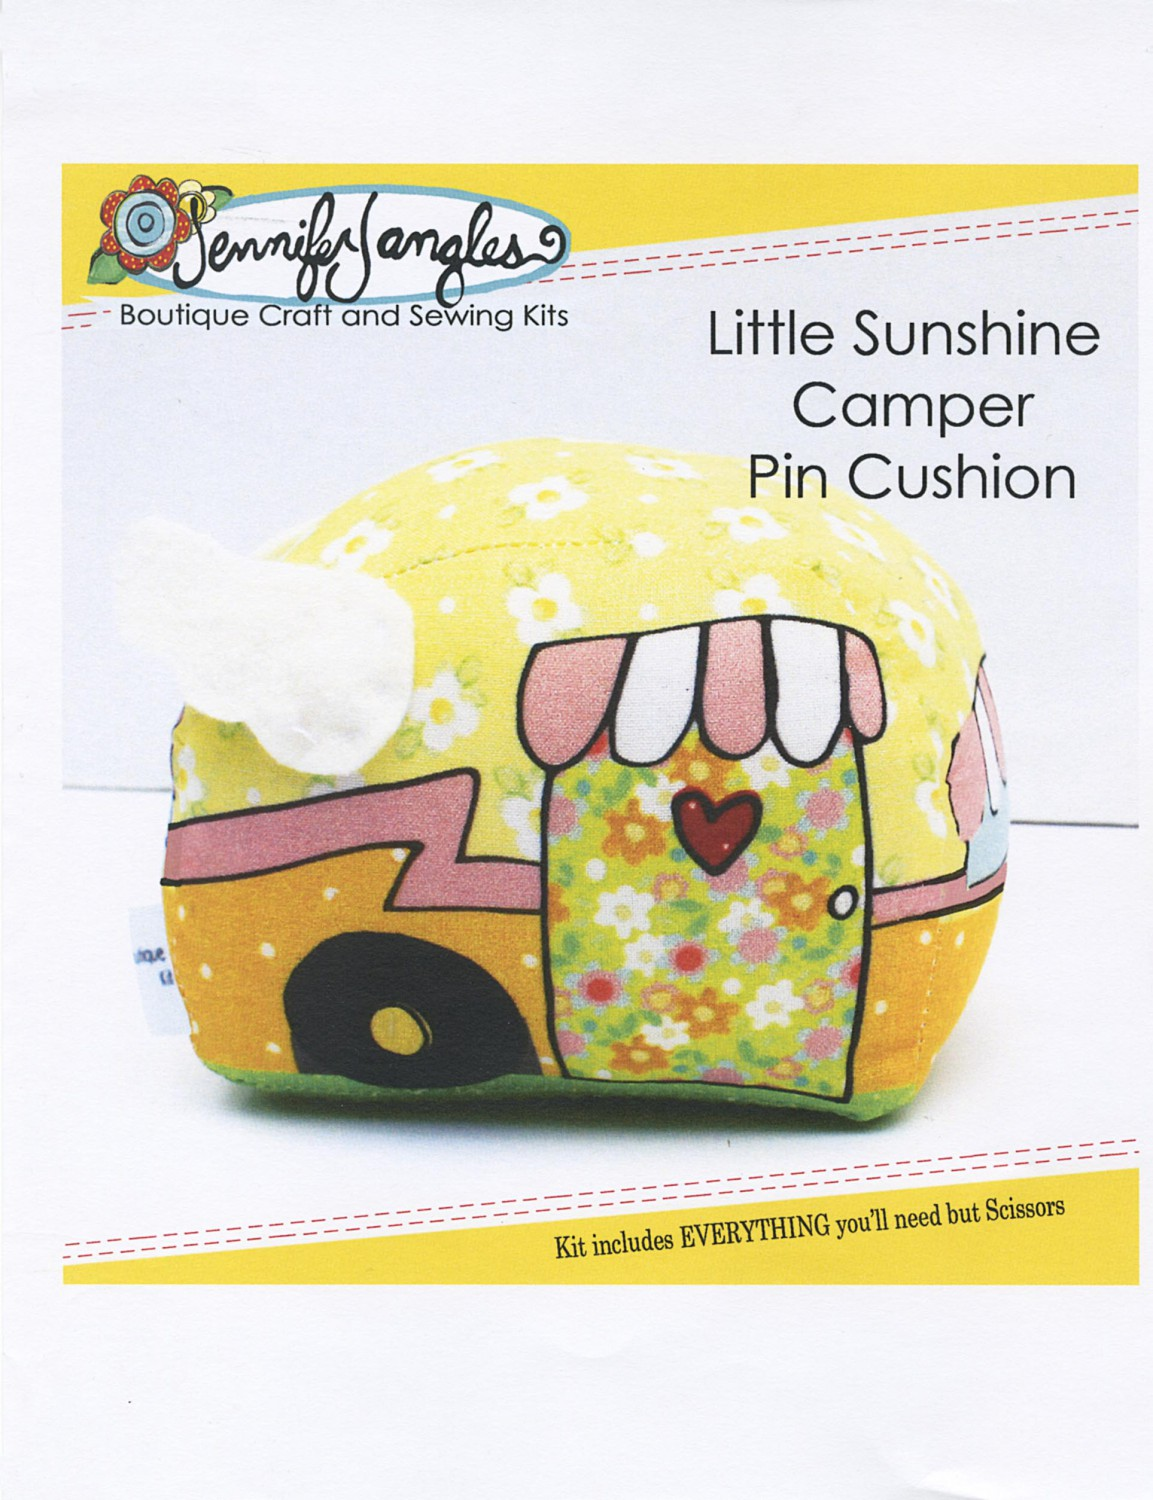 0017cf7a Little Sunshine Camper Pin Cushion Kit KT-5342 by Jennifer Jangles -  Includes everything you need but scissors!